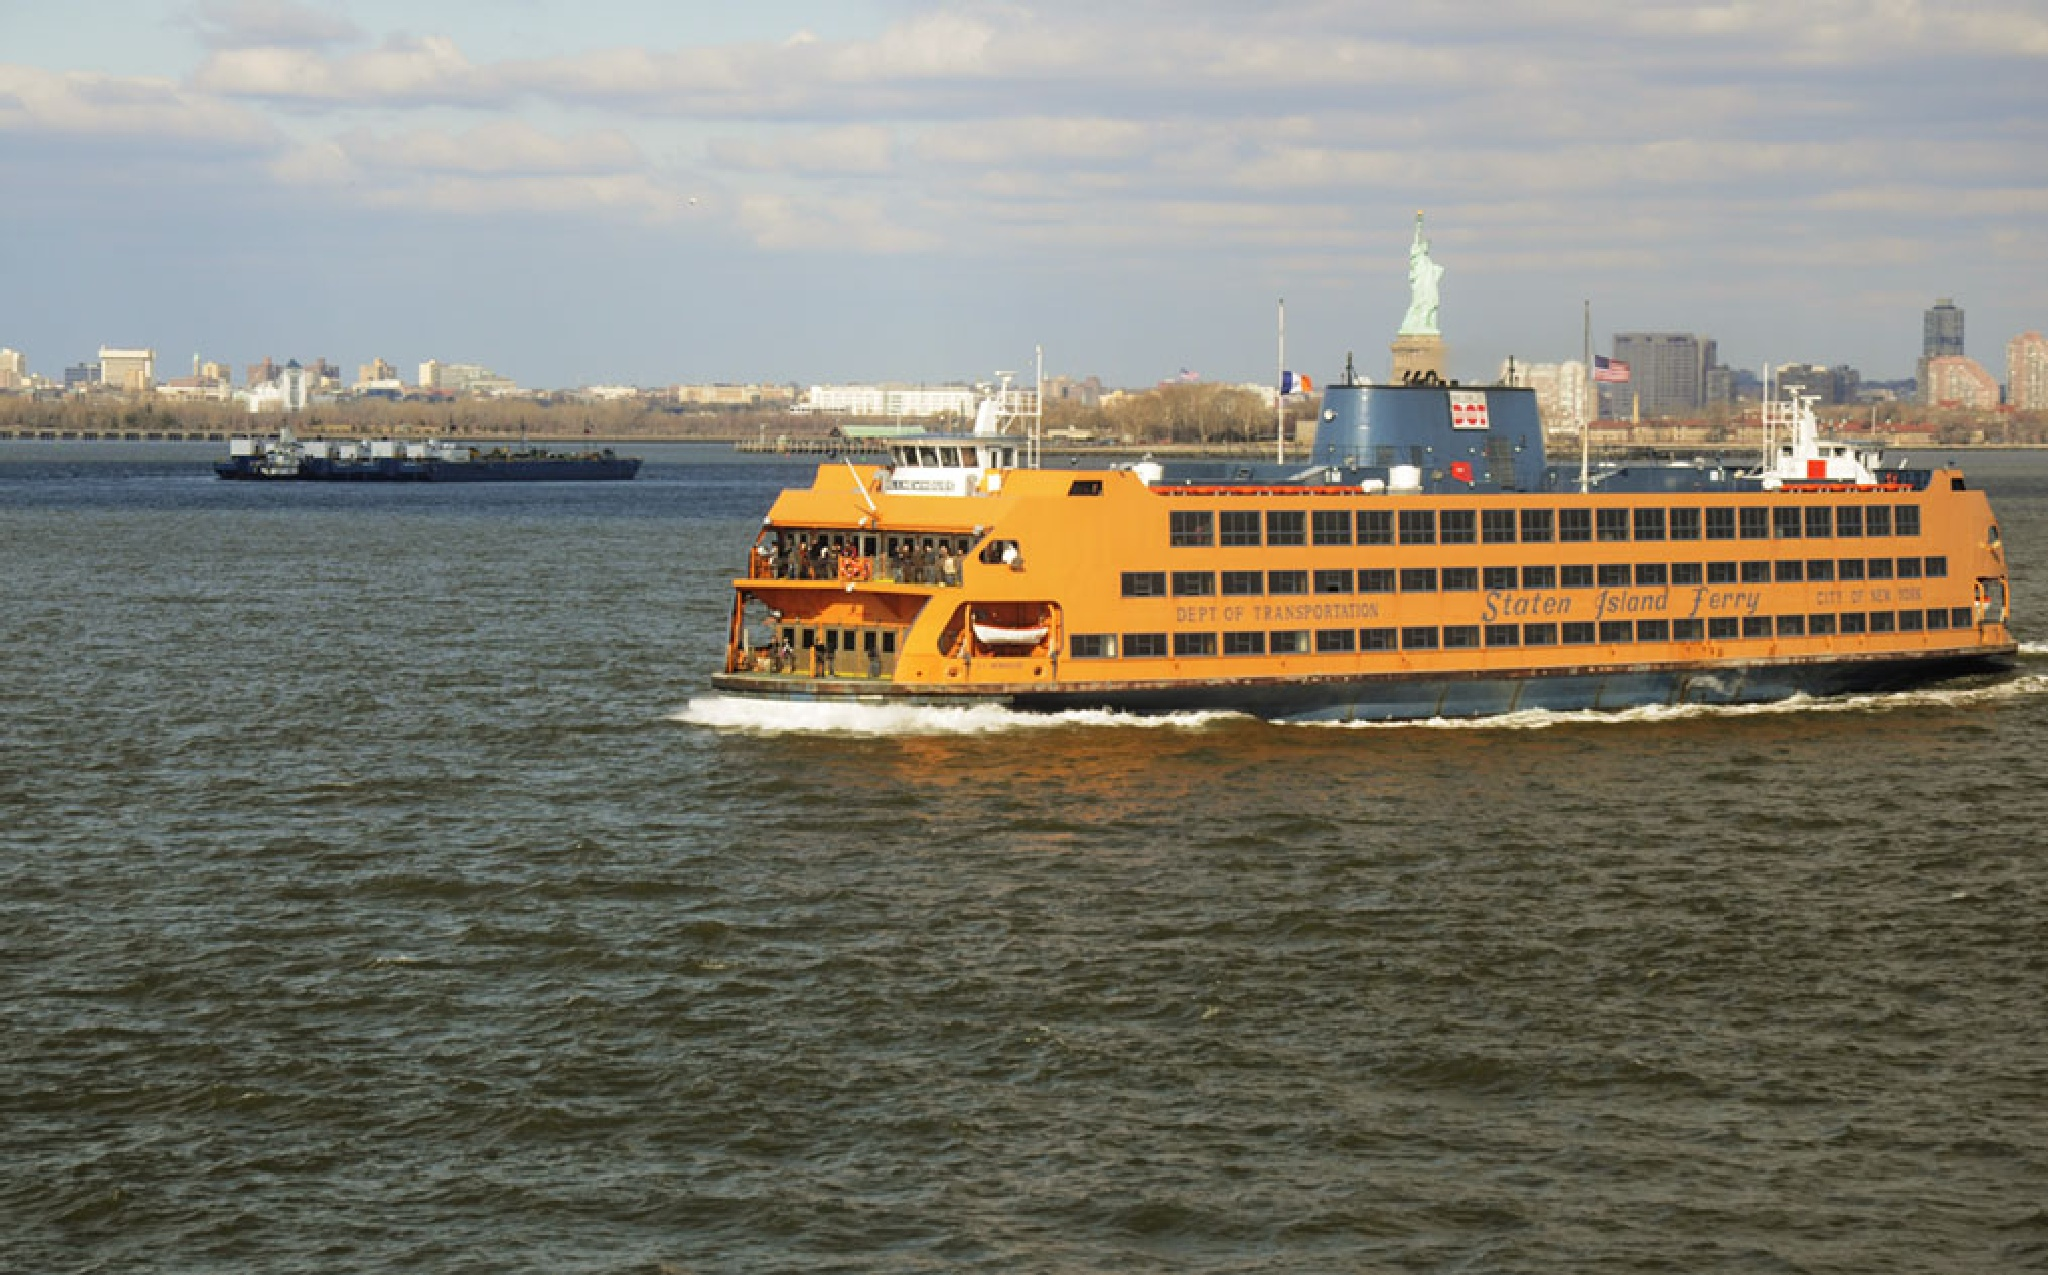 The Famed Staten Island Ferry by Wayne L. Talbot